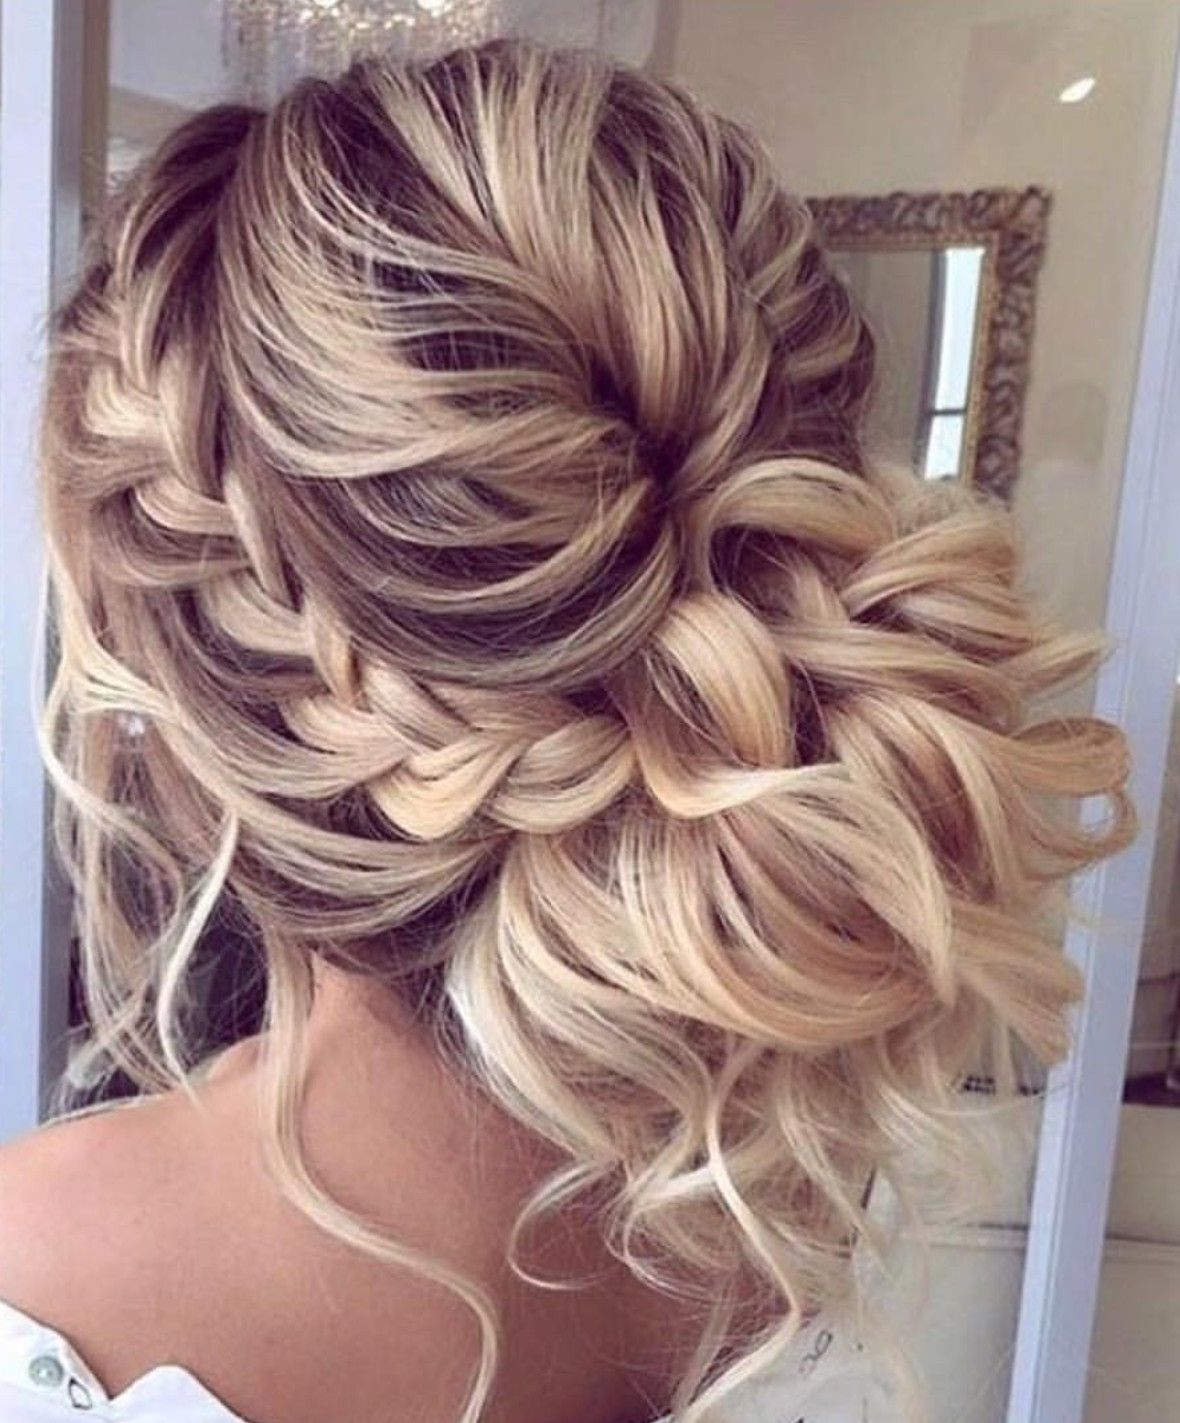 21 Most Outstanding Braided Wedding Hairstyles: Inspiration For Raredirndl.com